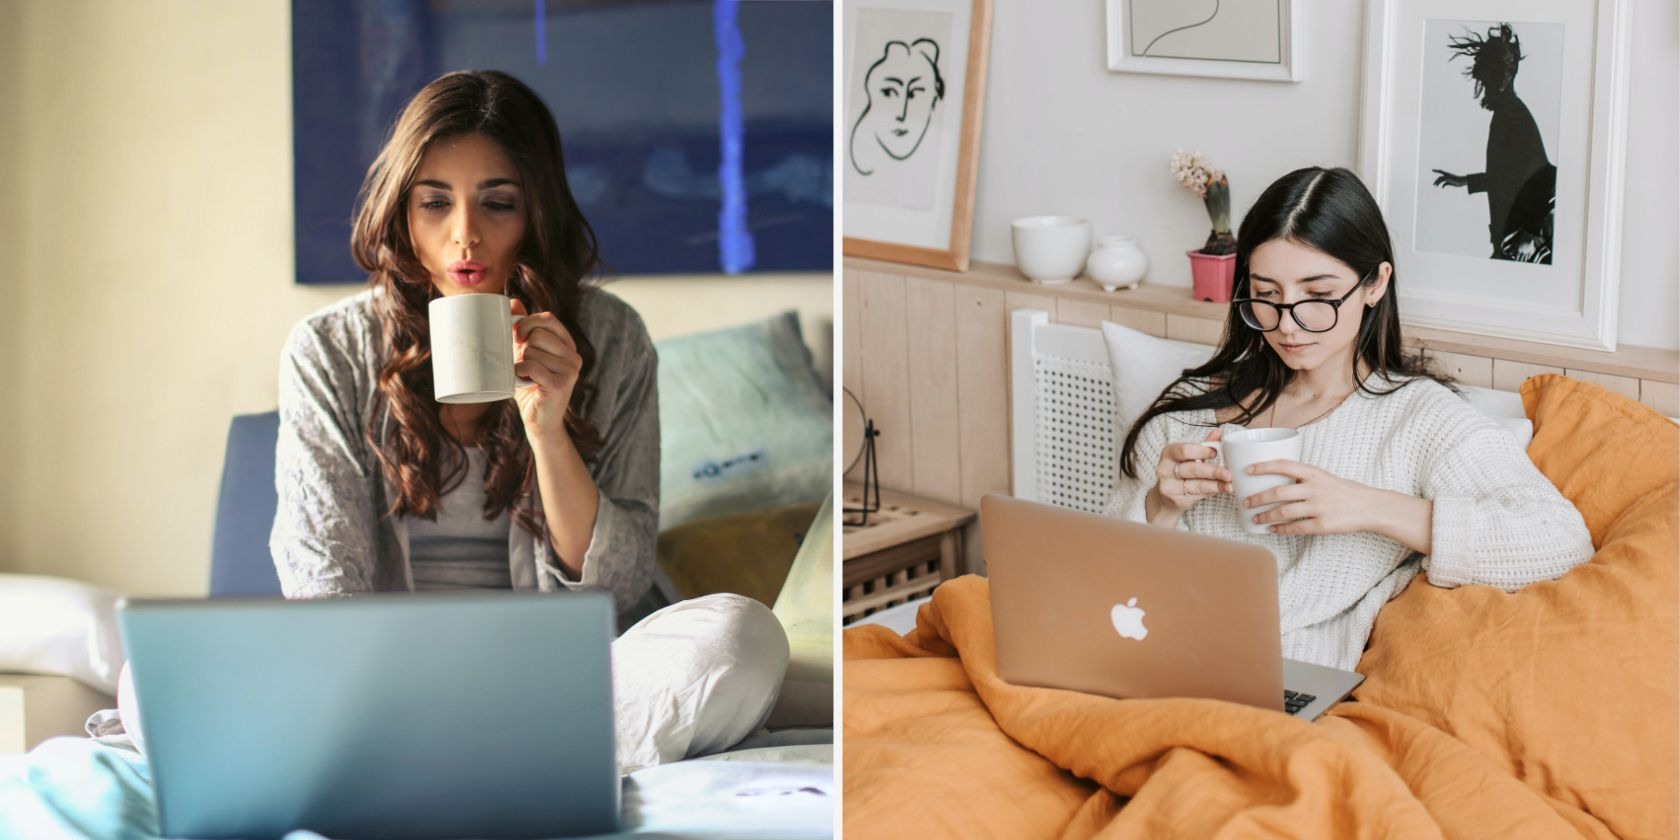 The 8 Best Ways to Watch Movies Together Online